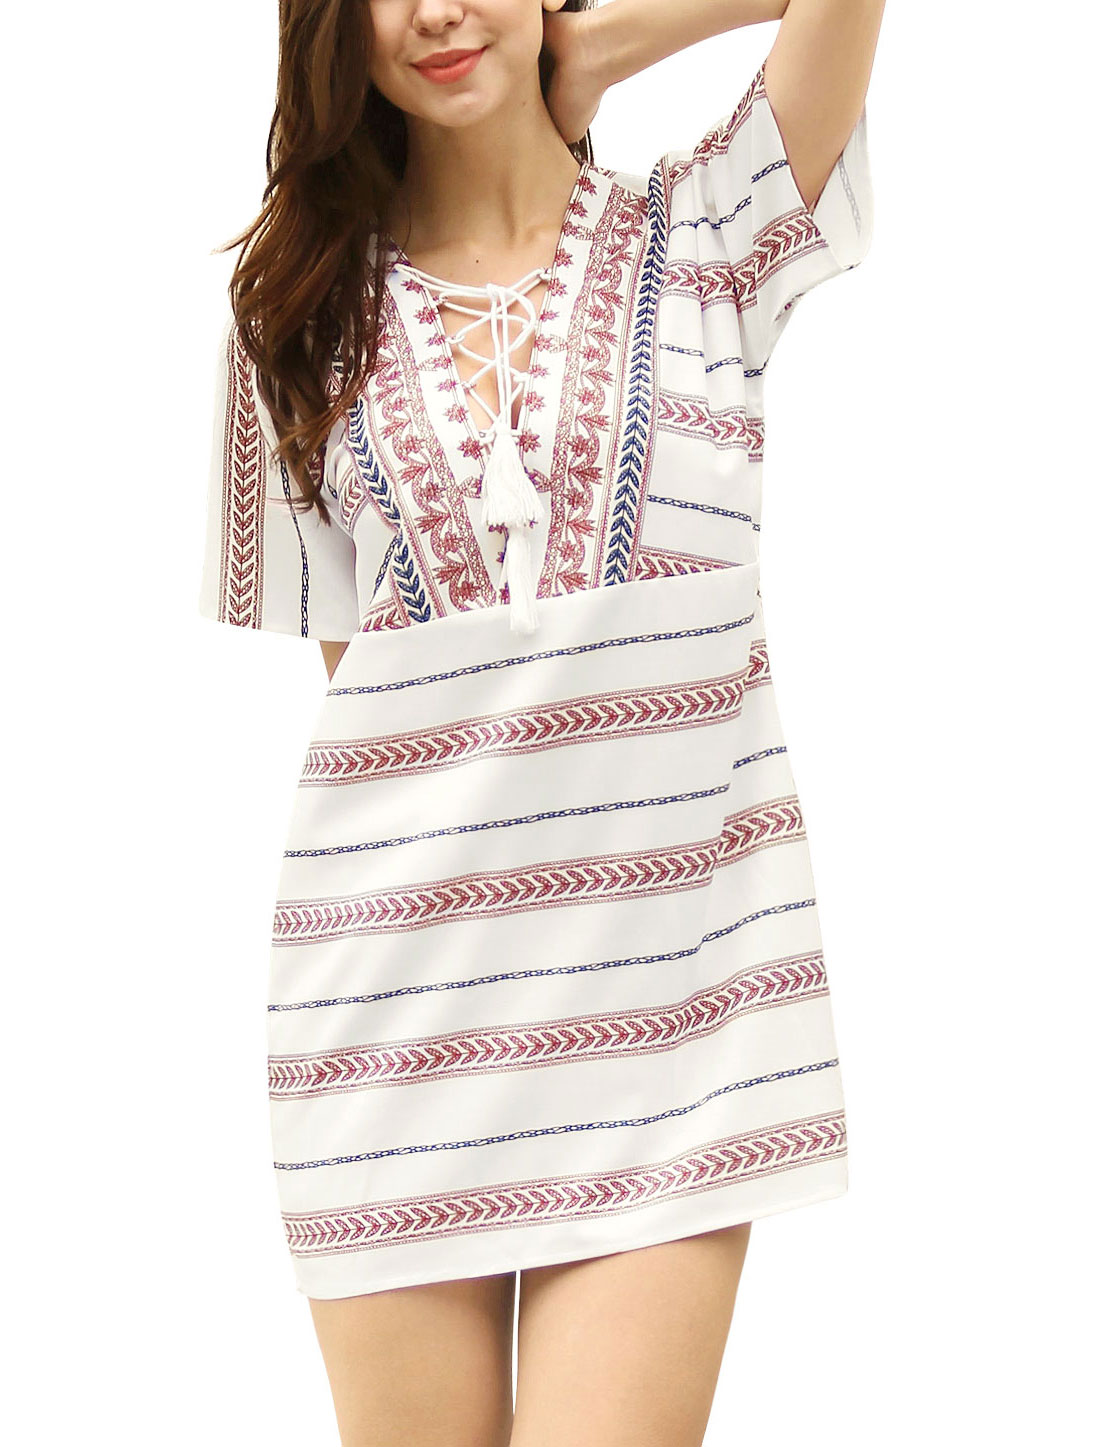 Women Leaves Stripes Pattern Fringe Lace Up Mini Dress White XL